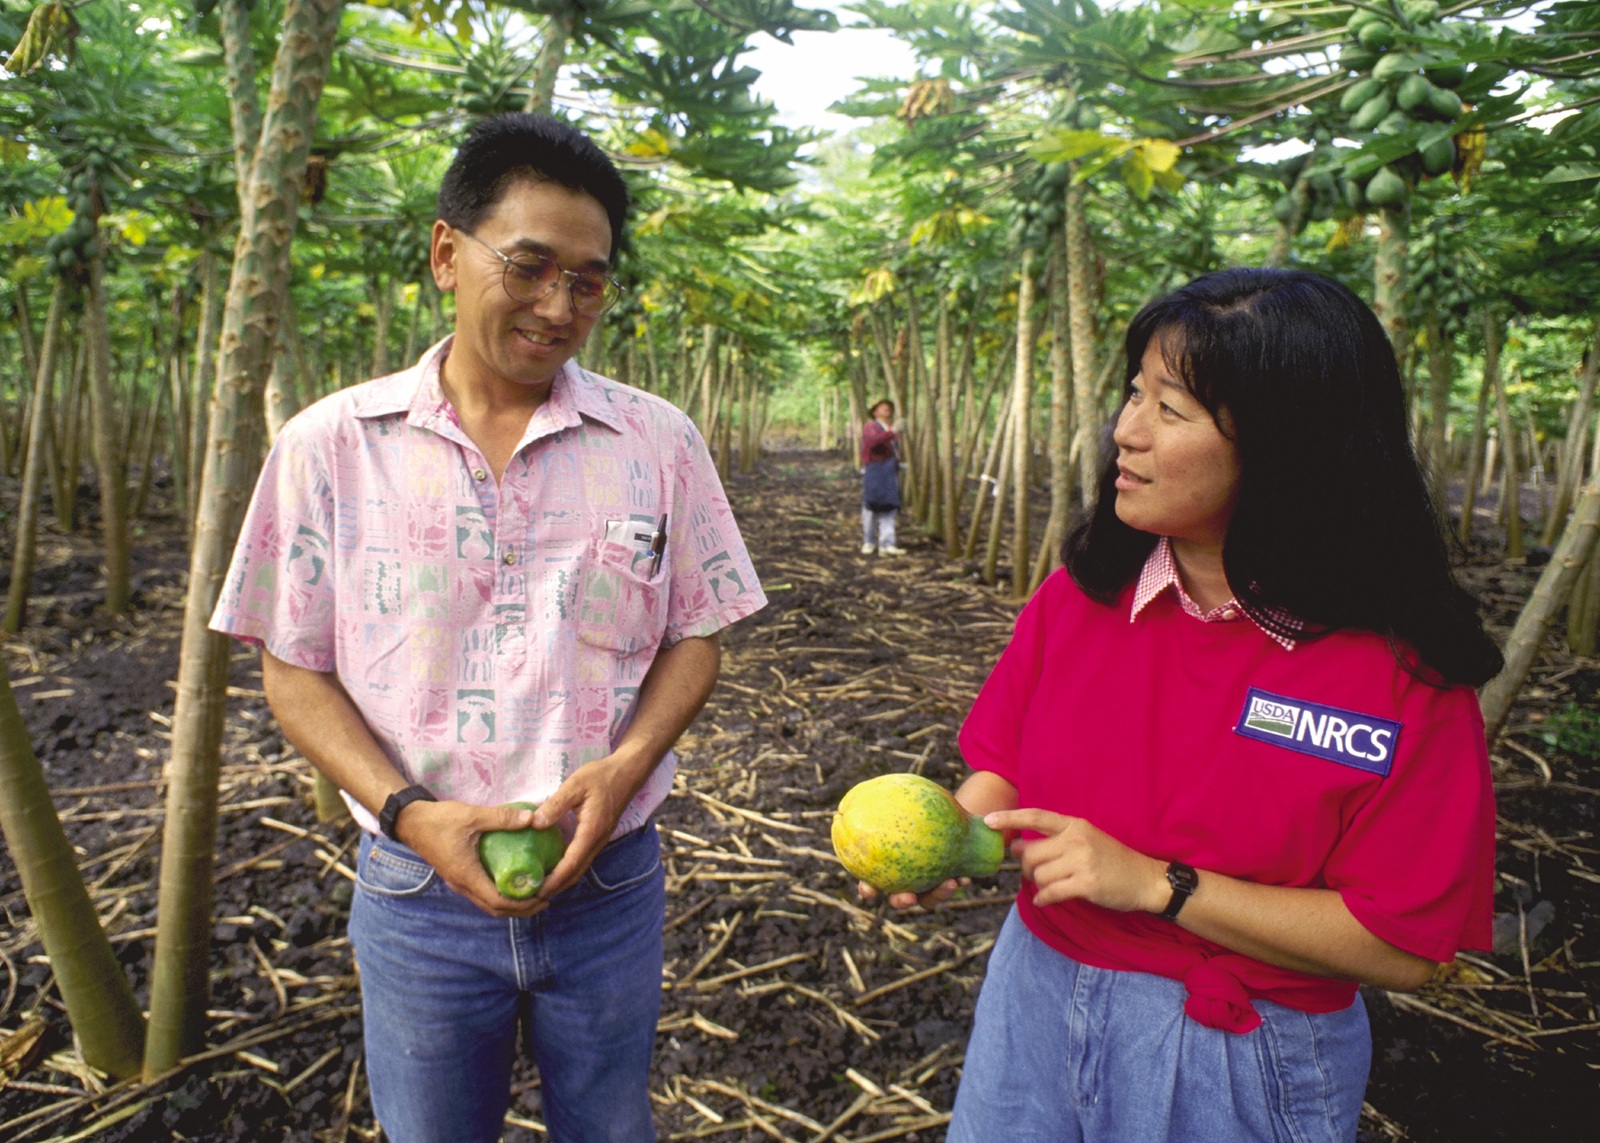 Plant Supervisor for Tropical Hawaiian Products and NRCS Conservationist discuss conservation on a papaya orchard in the Waiakea Conservation District in HI.